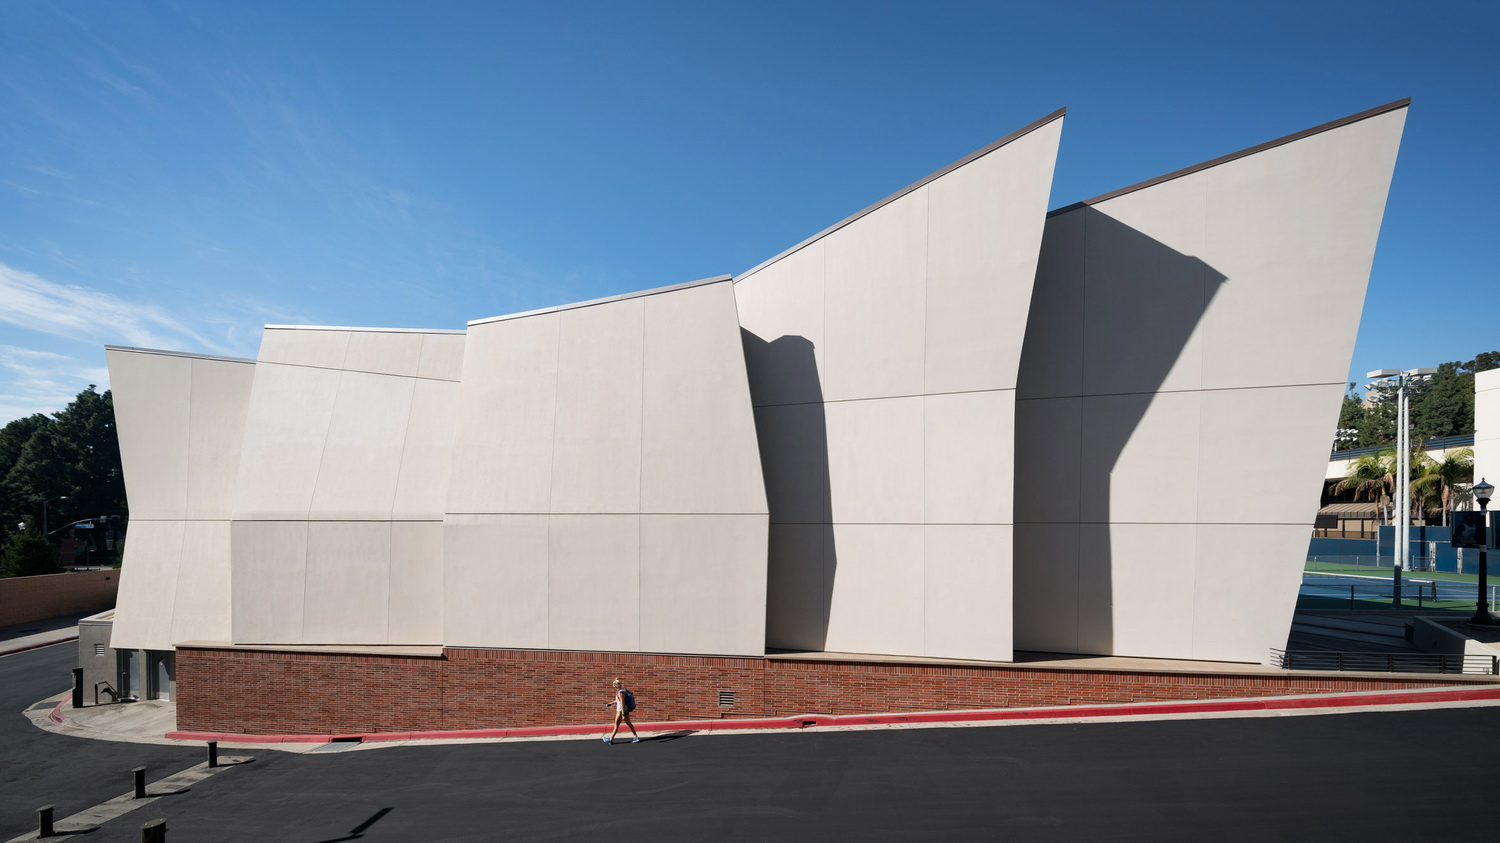 调整大小 ucla-basketball-facility-kevin-daly-architects-architecture-los-angeles-california-usa_dezeen_2364_hero.jpg